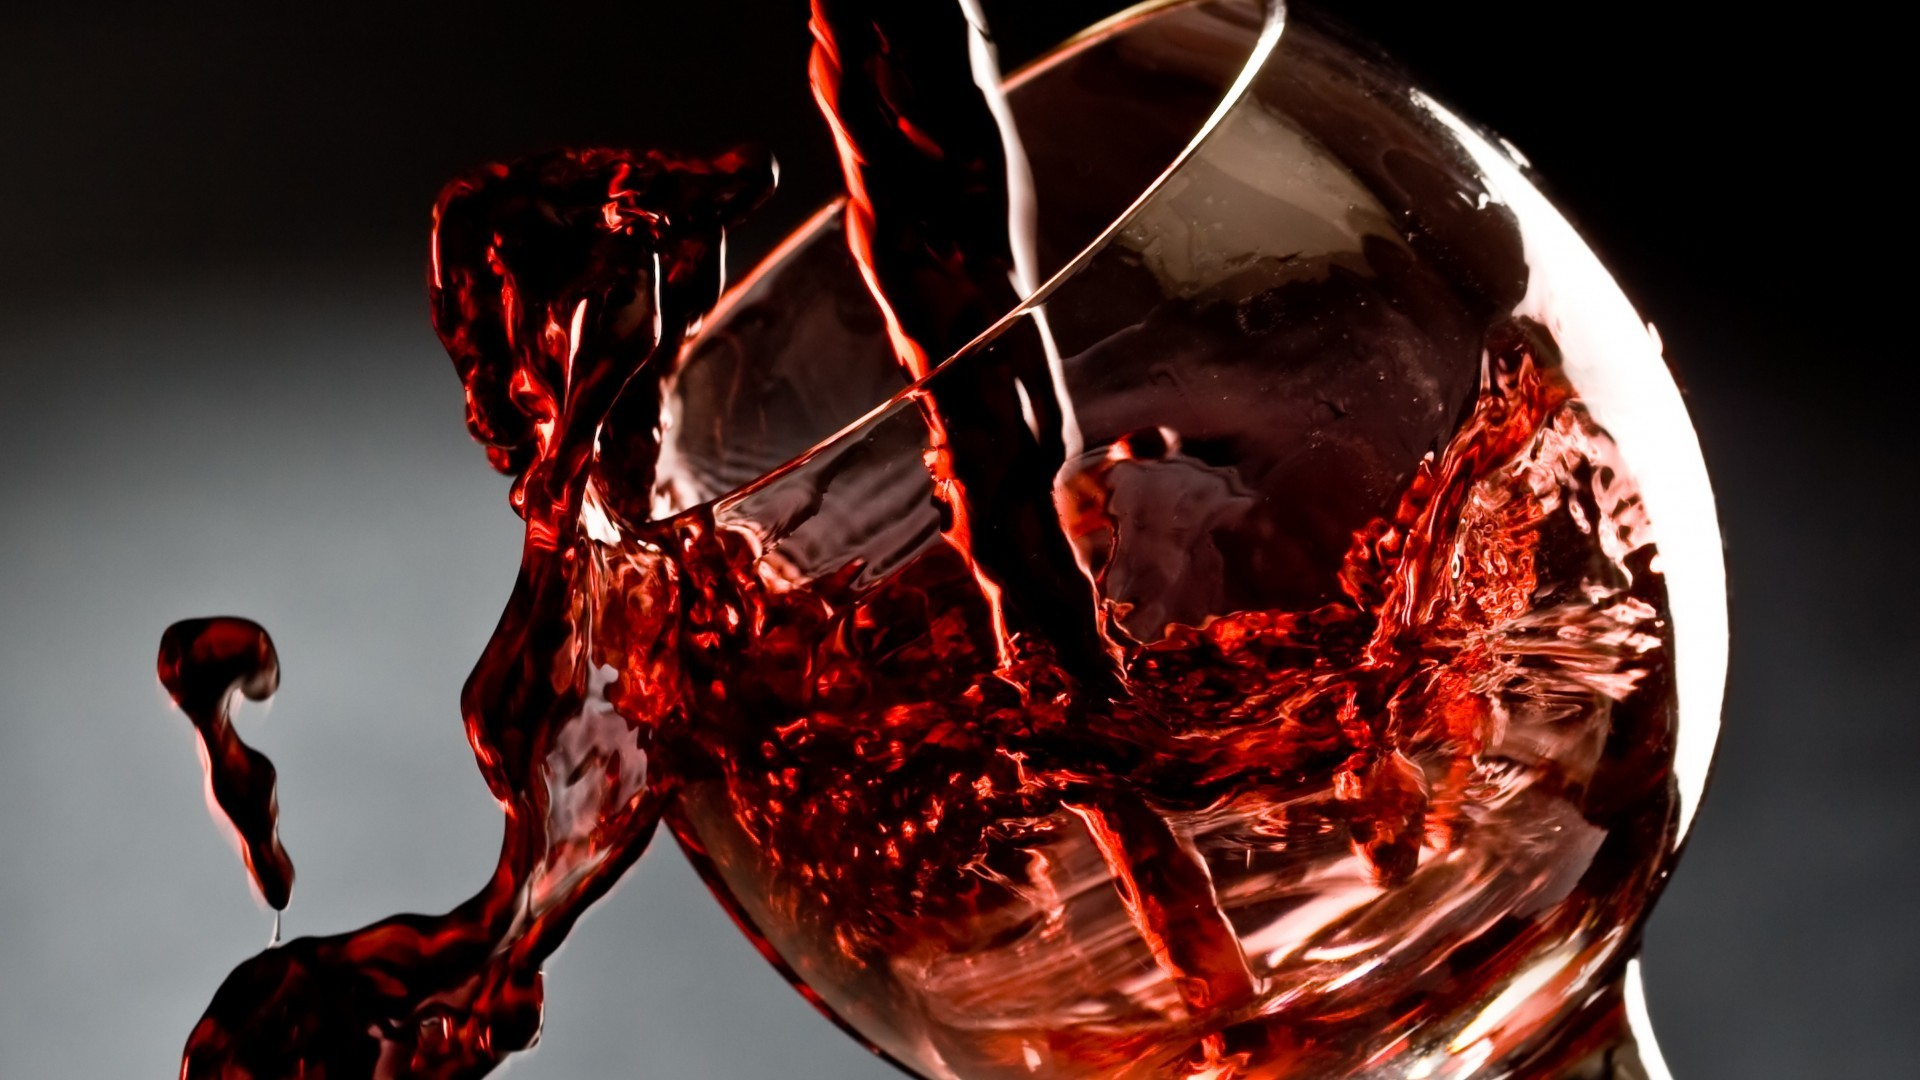 Res: 1920x1080, red wine wallpaper #435027